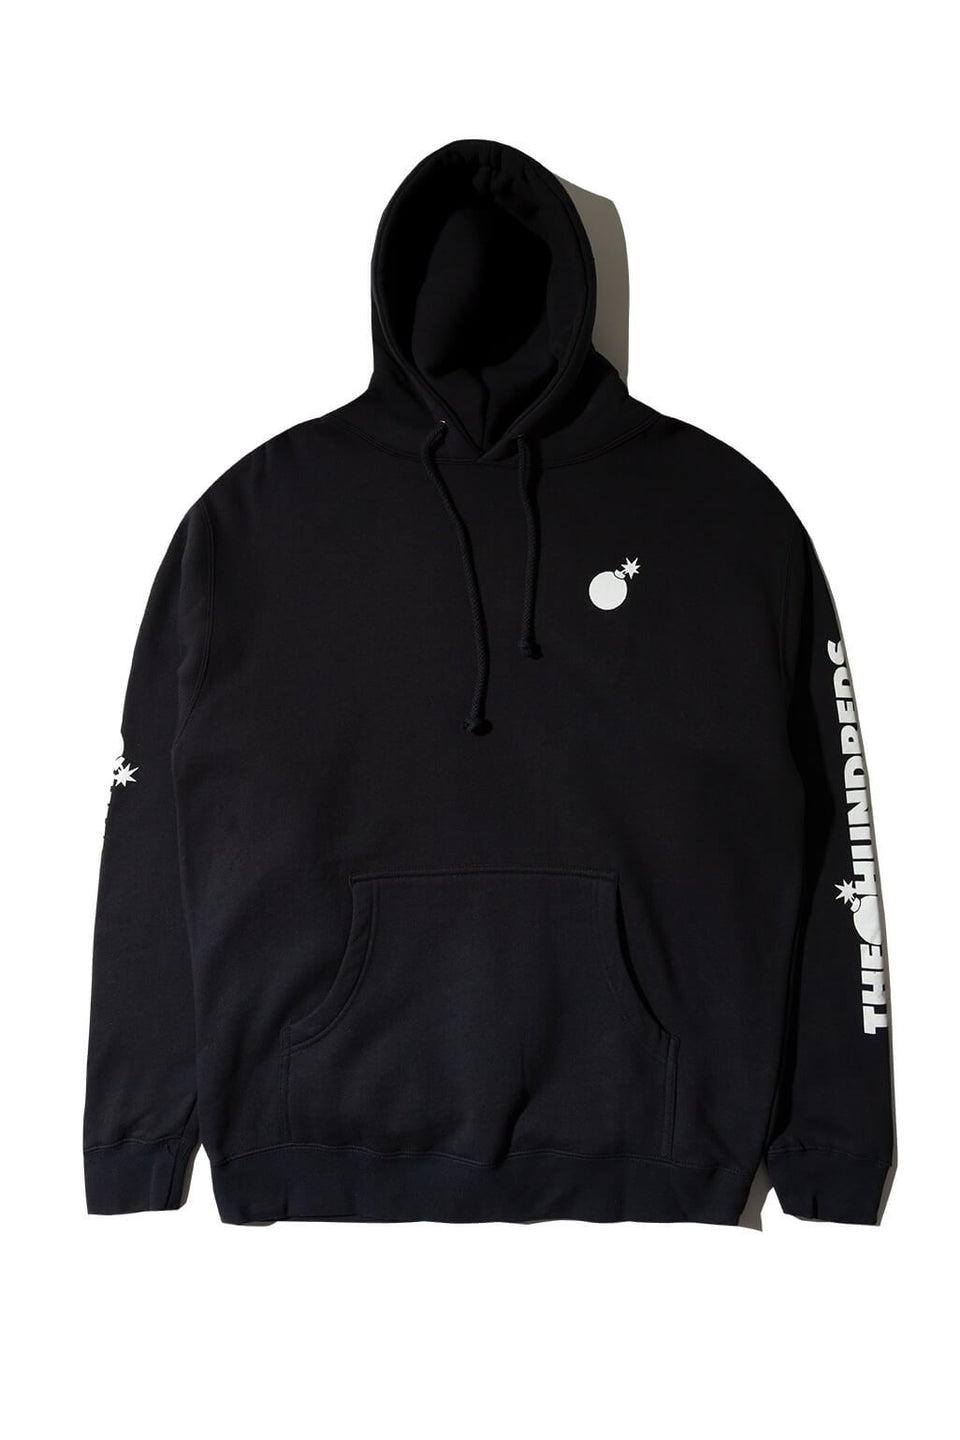 Forever Solid Bomb Crest Pullover Hoodie Navy Front